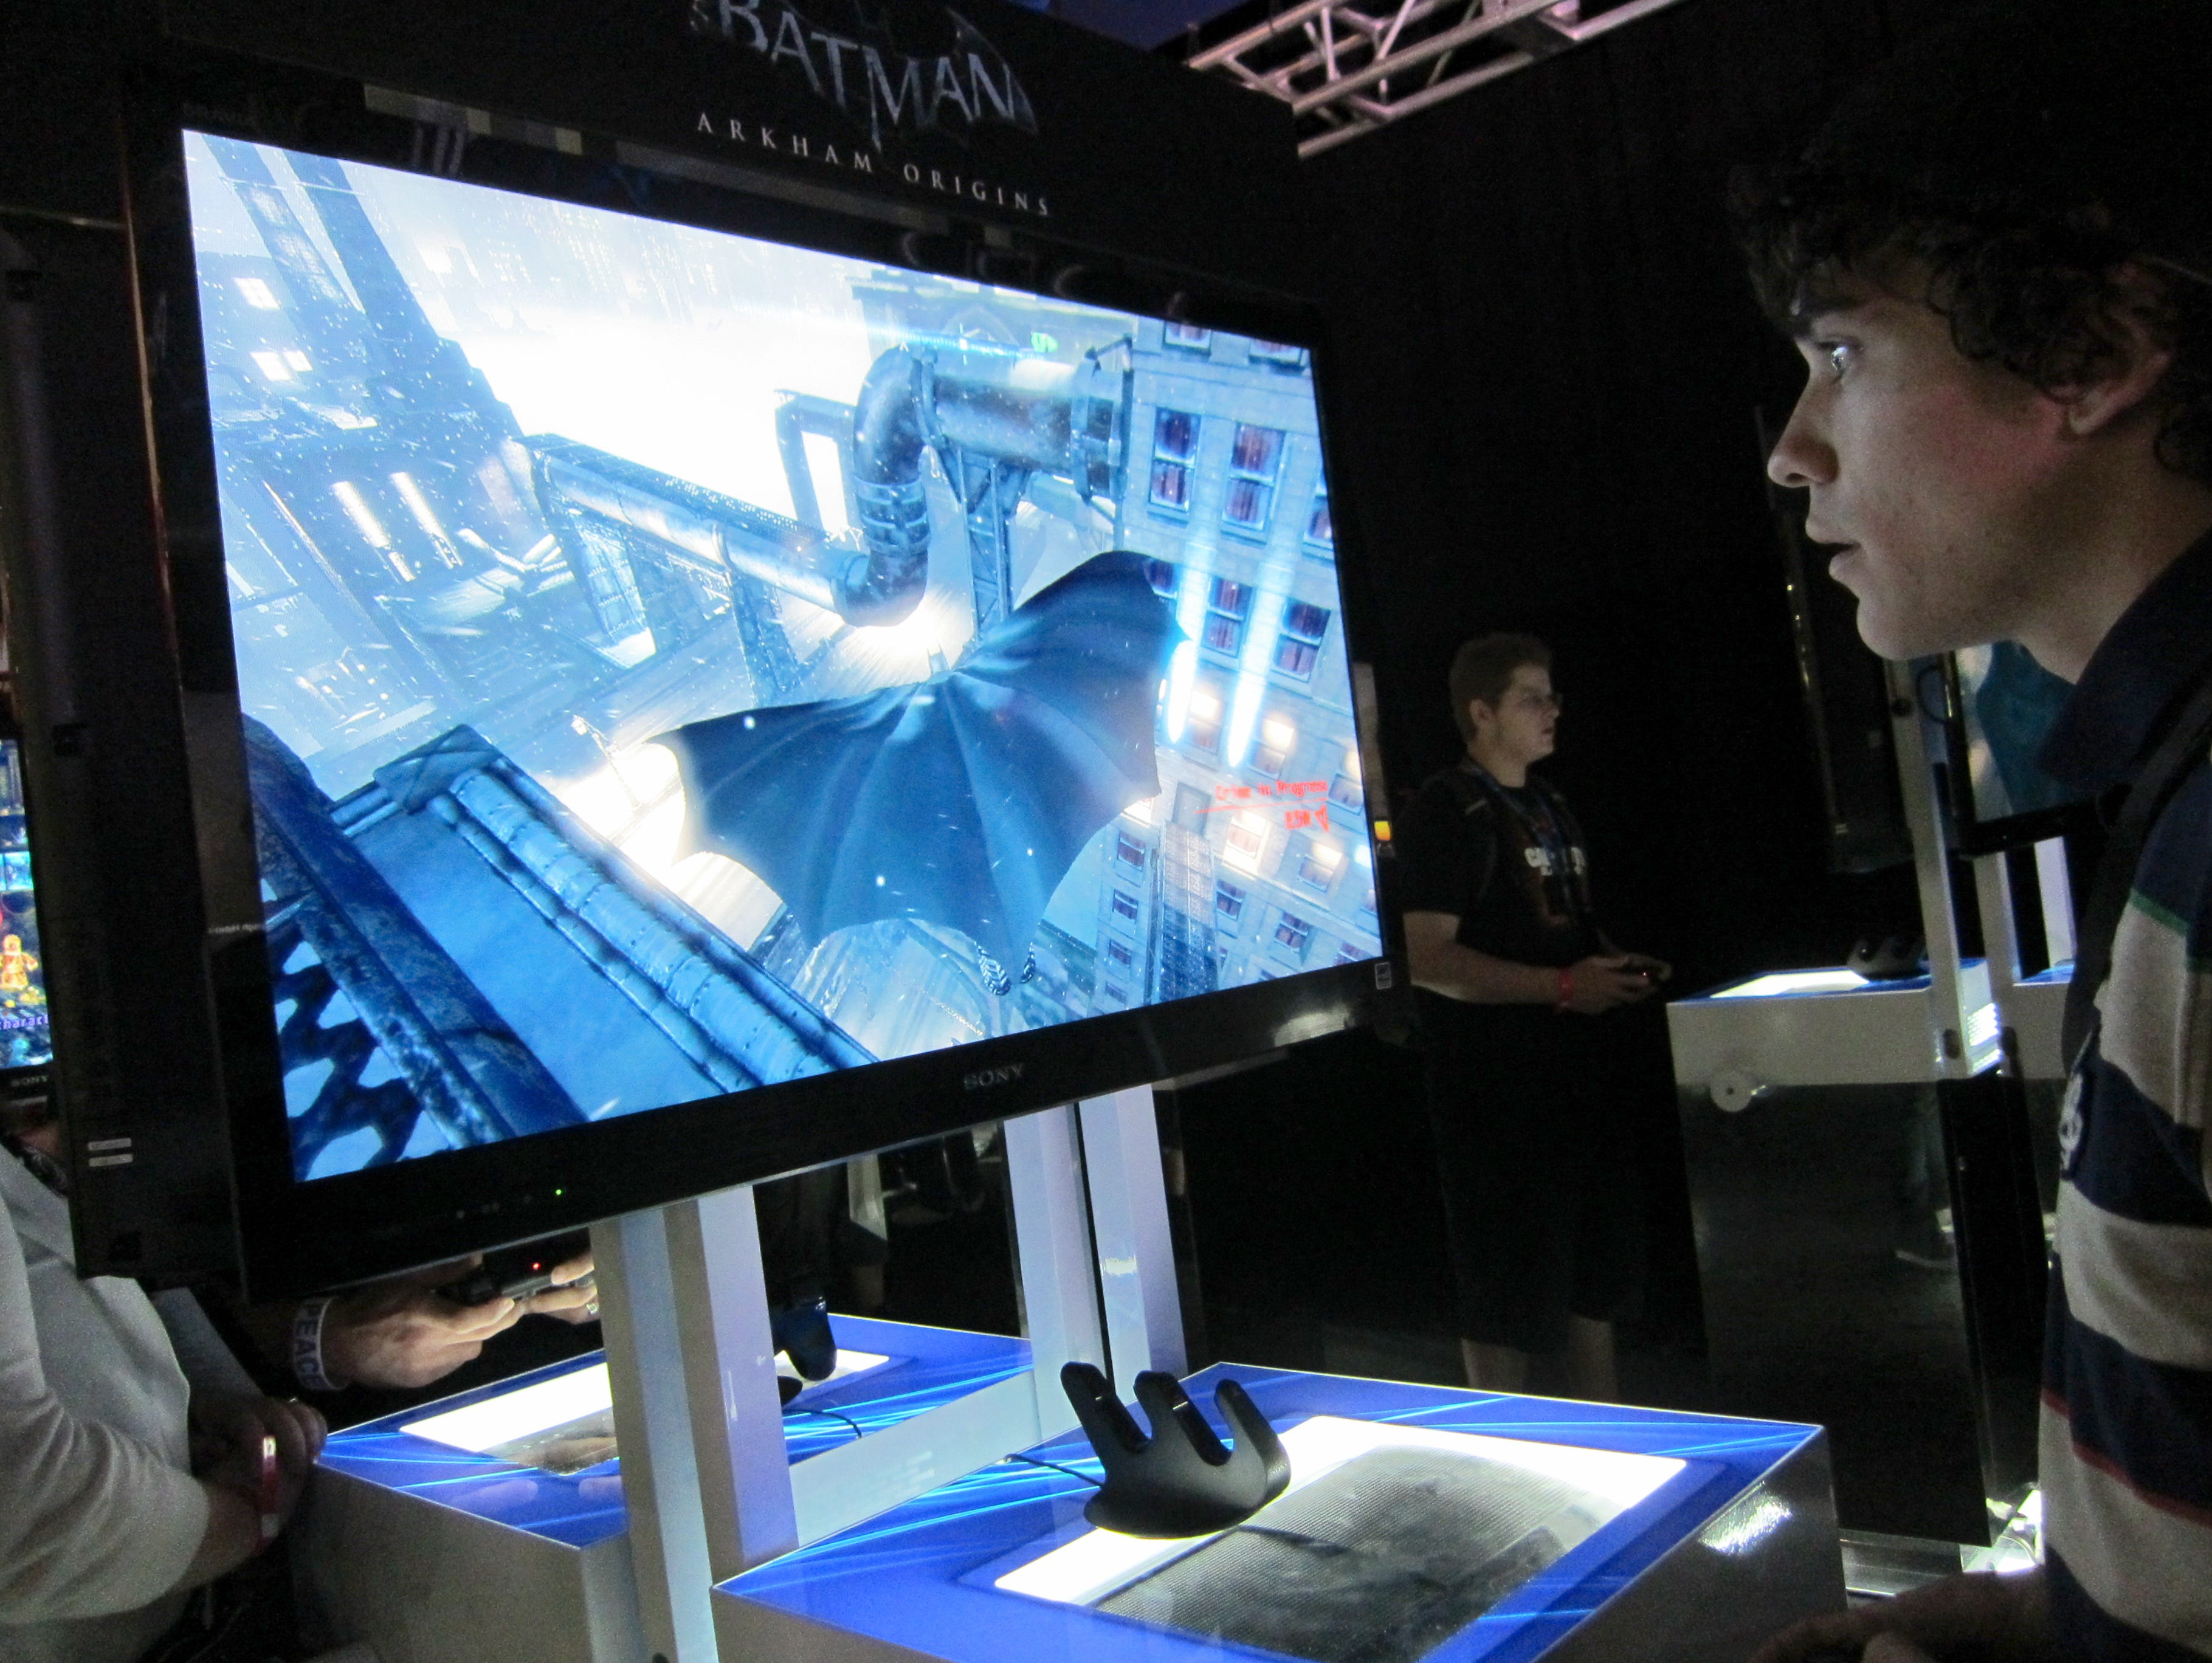 Andre Fontaine, 22, of Tucson, Ariz., plays the game Batman: Arkham Origins' on the PlayStation 4 at the GameStop Expo in Las Vegas in August 2013.